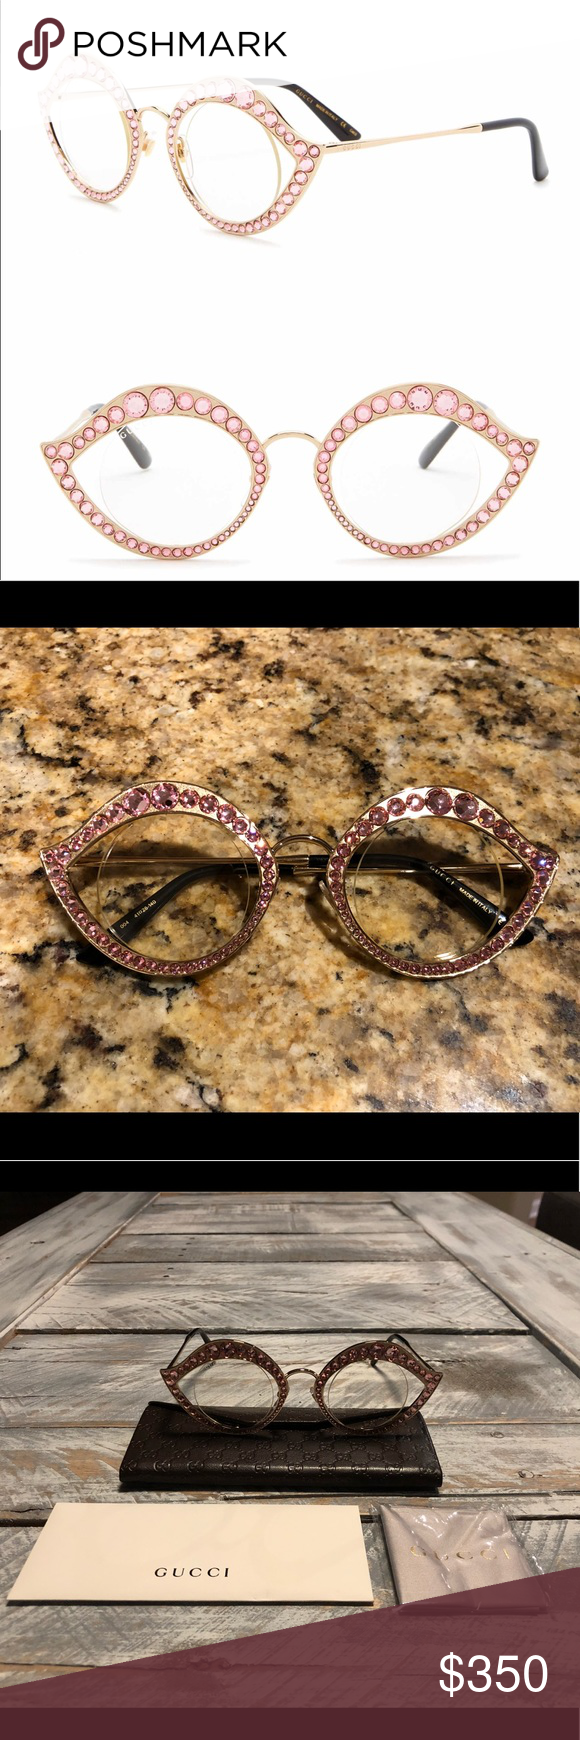 782591c4837 🌸🌸Gucci 41MM Cat Eye Crystal Accented🌸🌸 - Style  Cat eye with ...